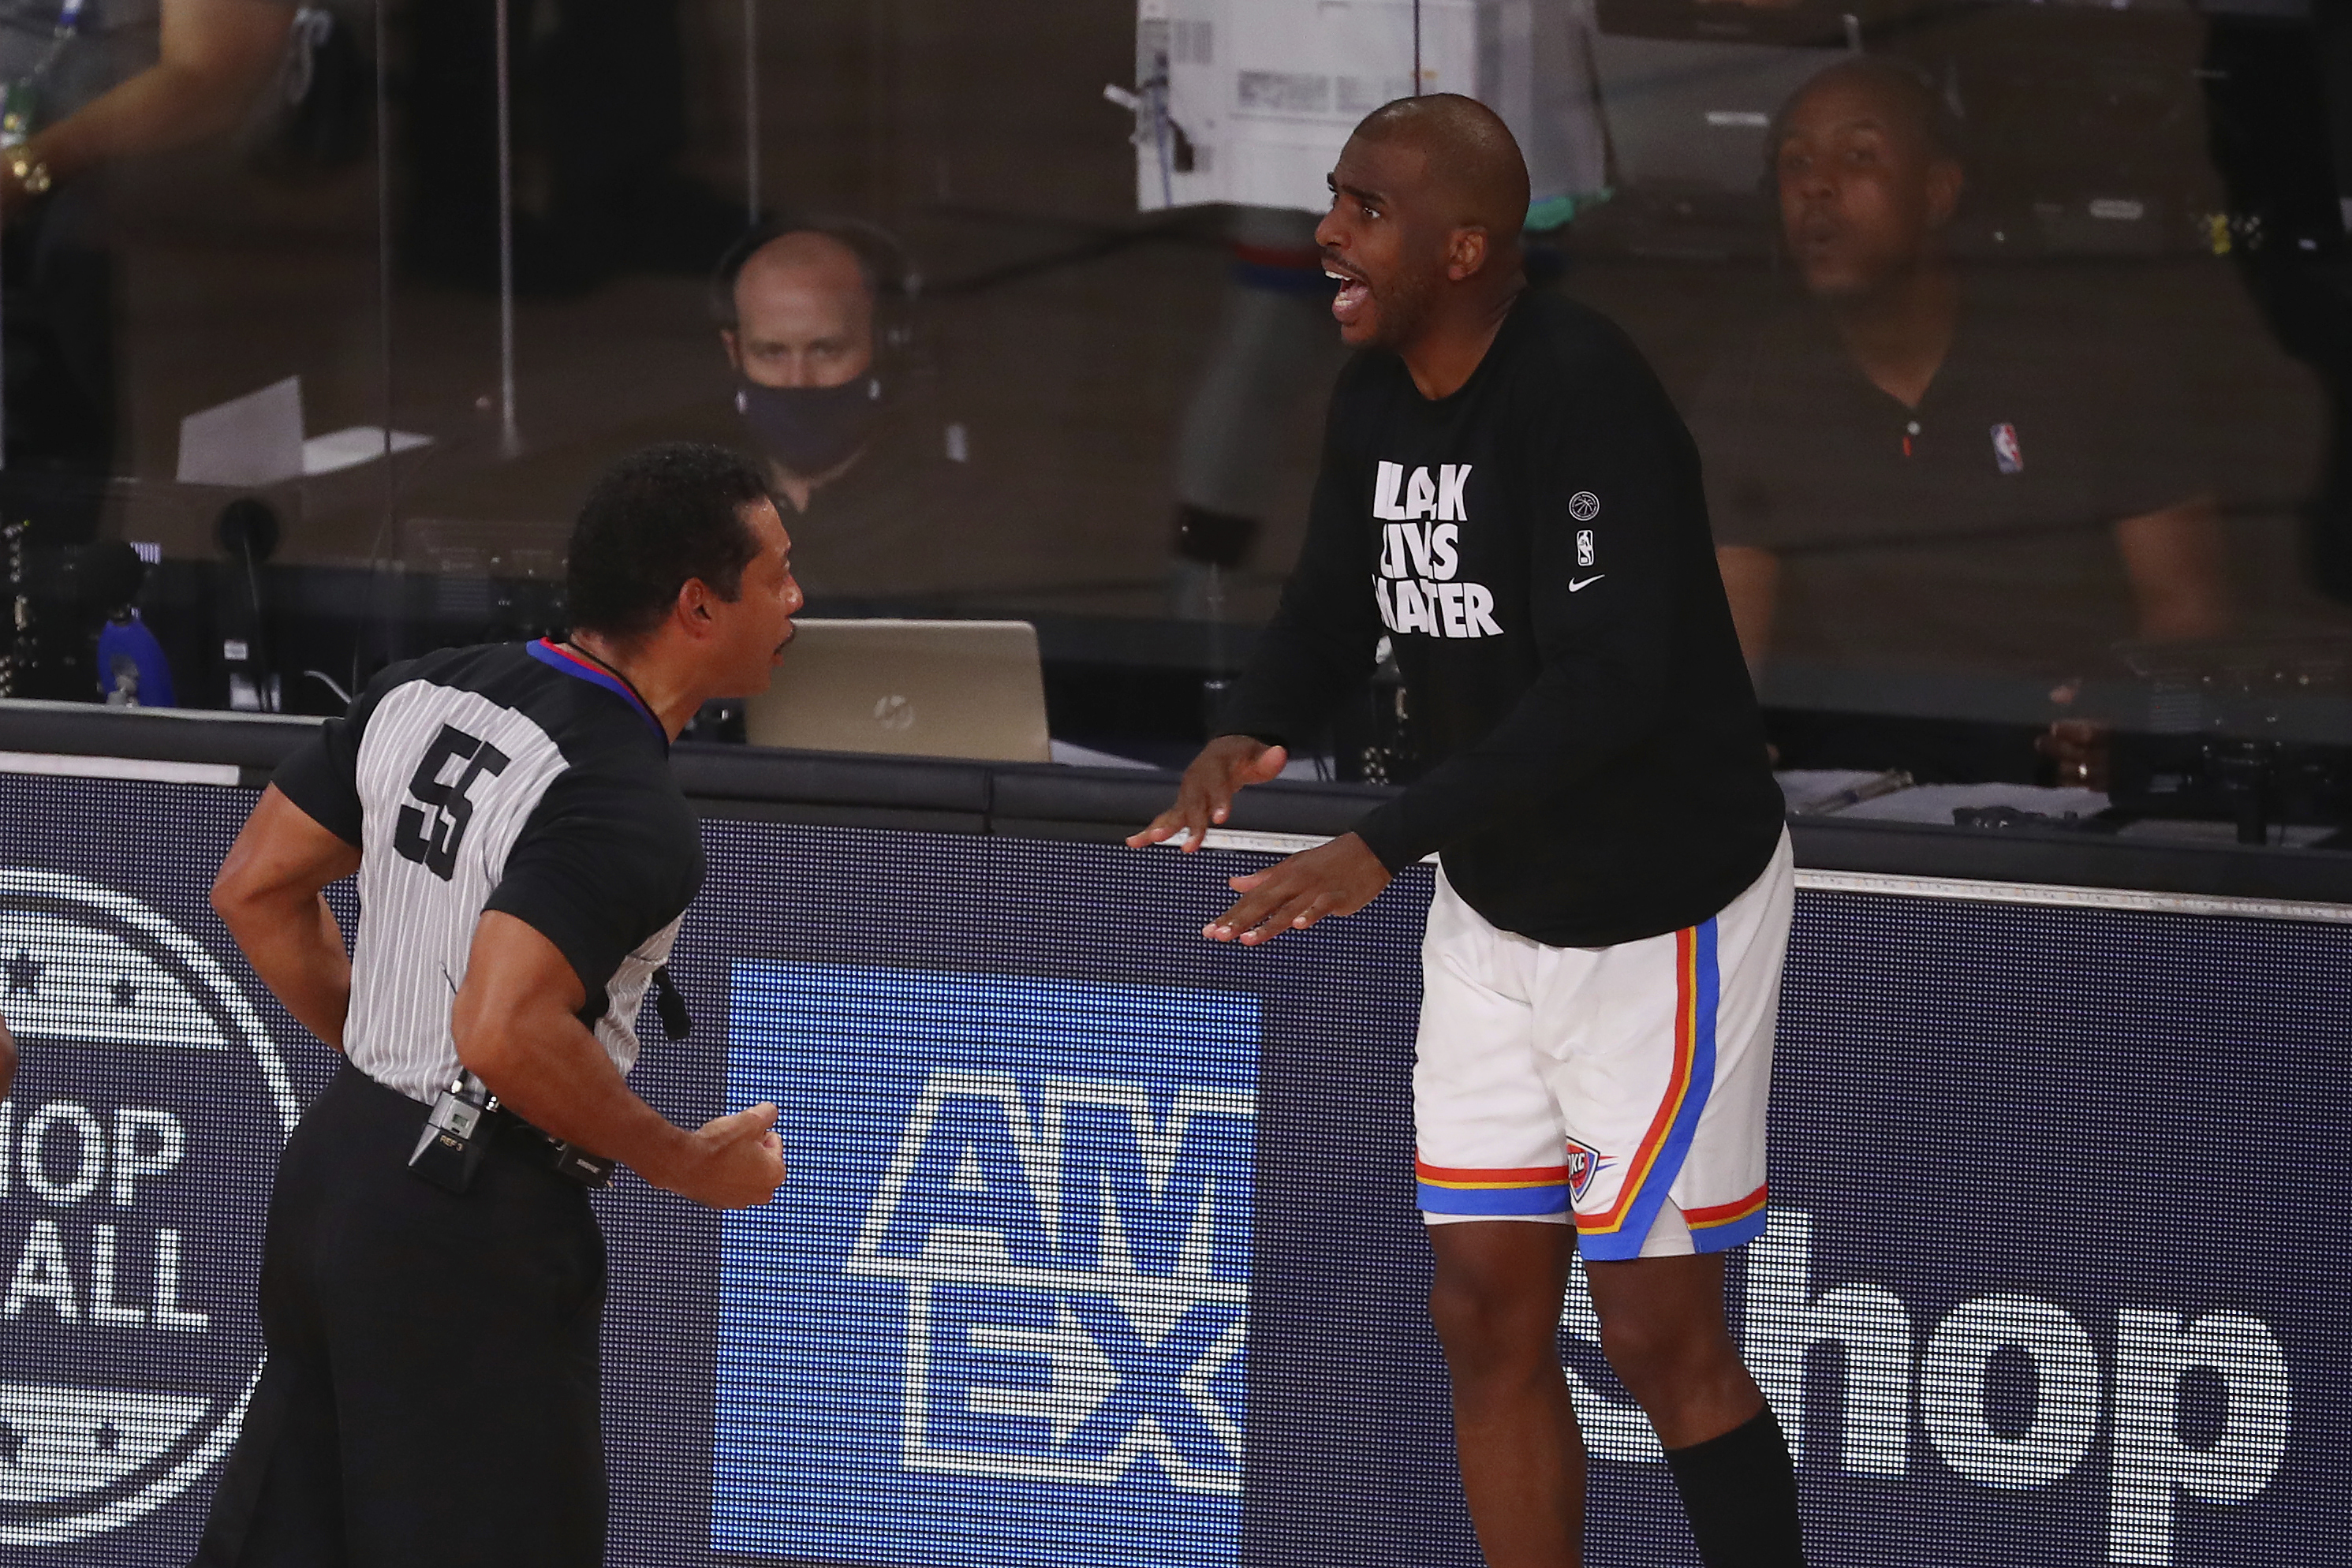 Oklahoma City Thunder guard Chris Paul, right, during Game 4 of the NBA's first-round playoff series on Aug. 24, 2020, in Lake Buena Vista, Fla. NBA players went on strike to protest the police shooting of Jacob Blake two days later on Aug. 26.